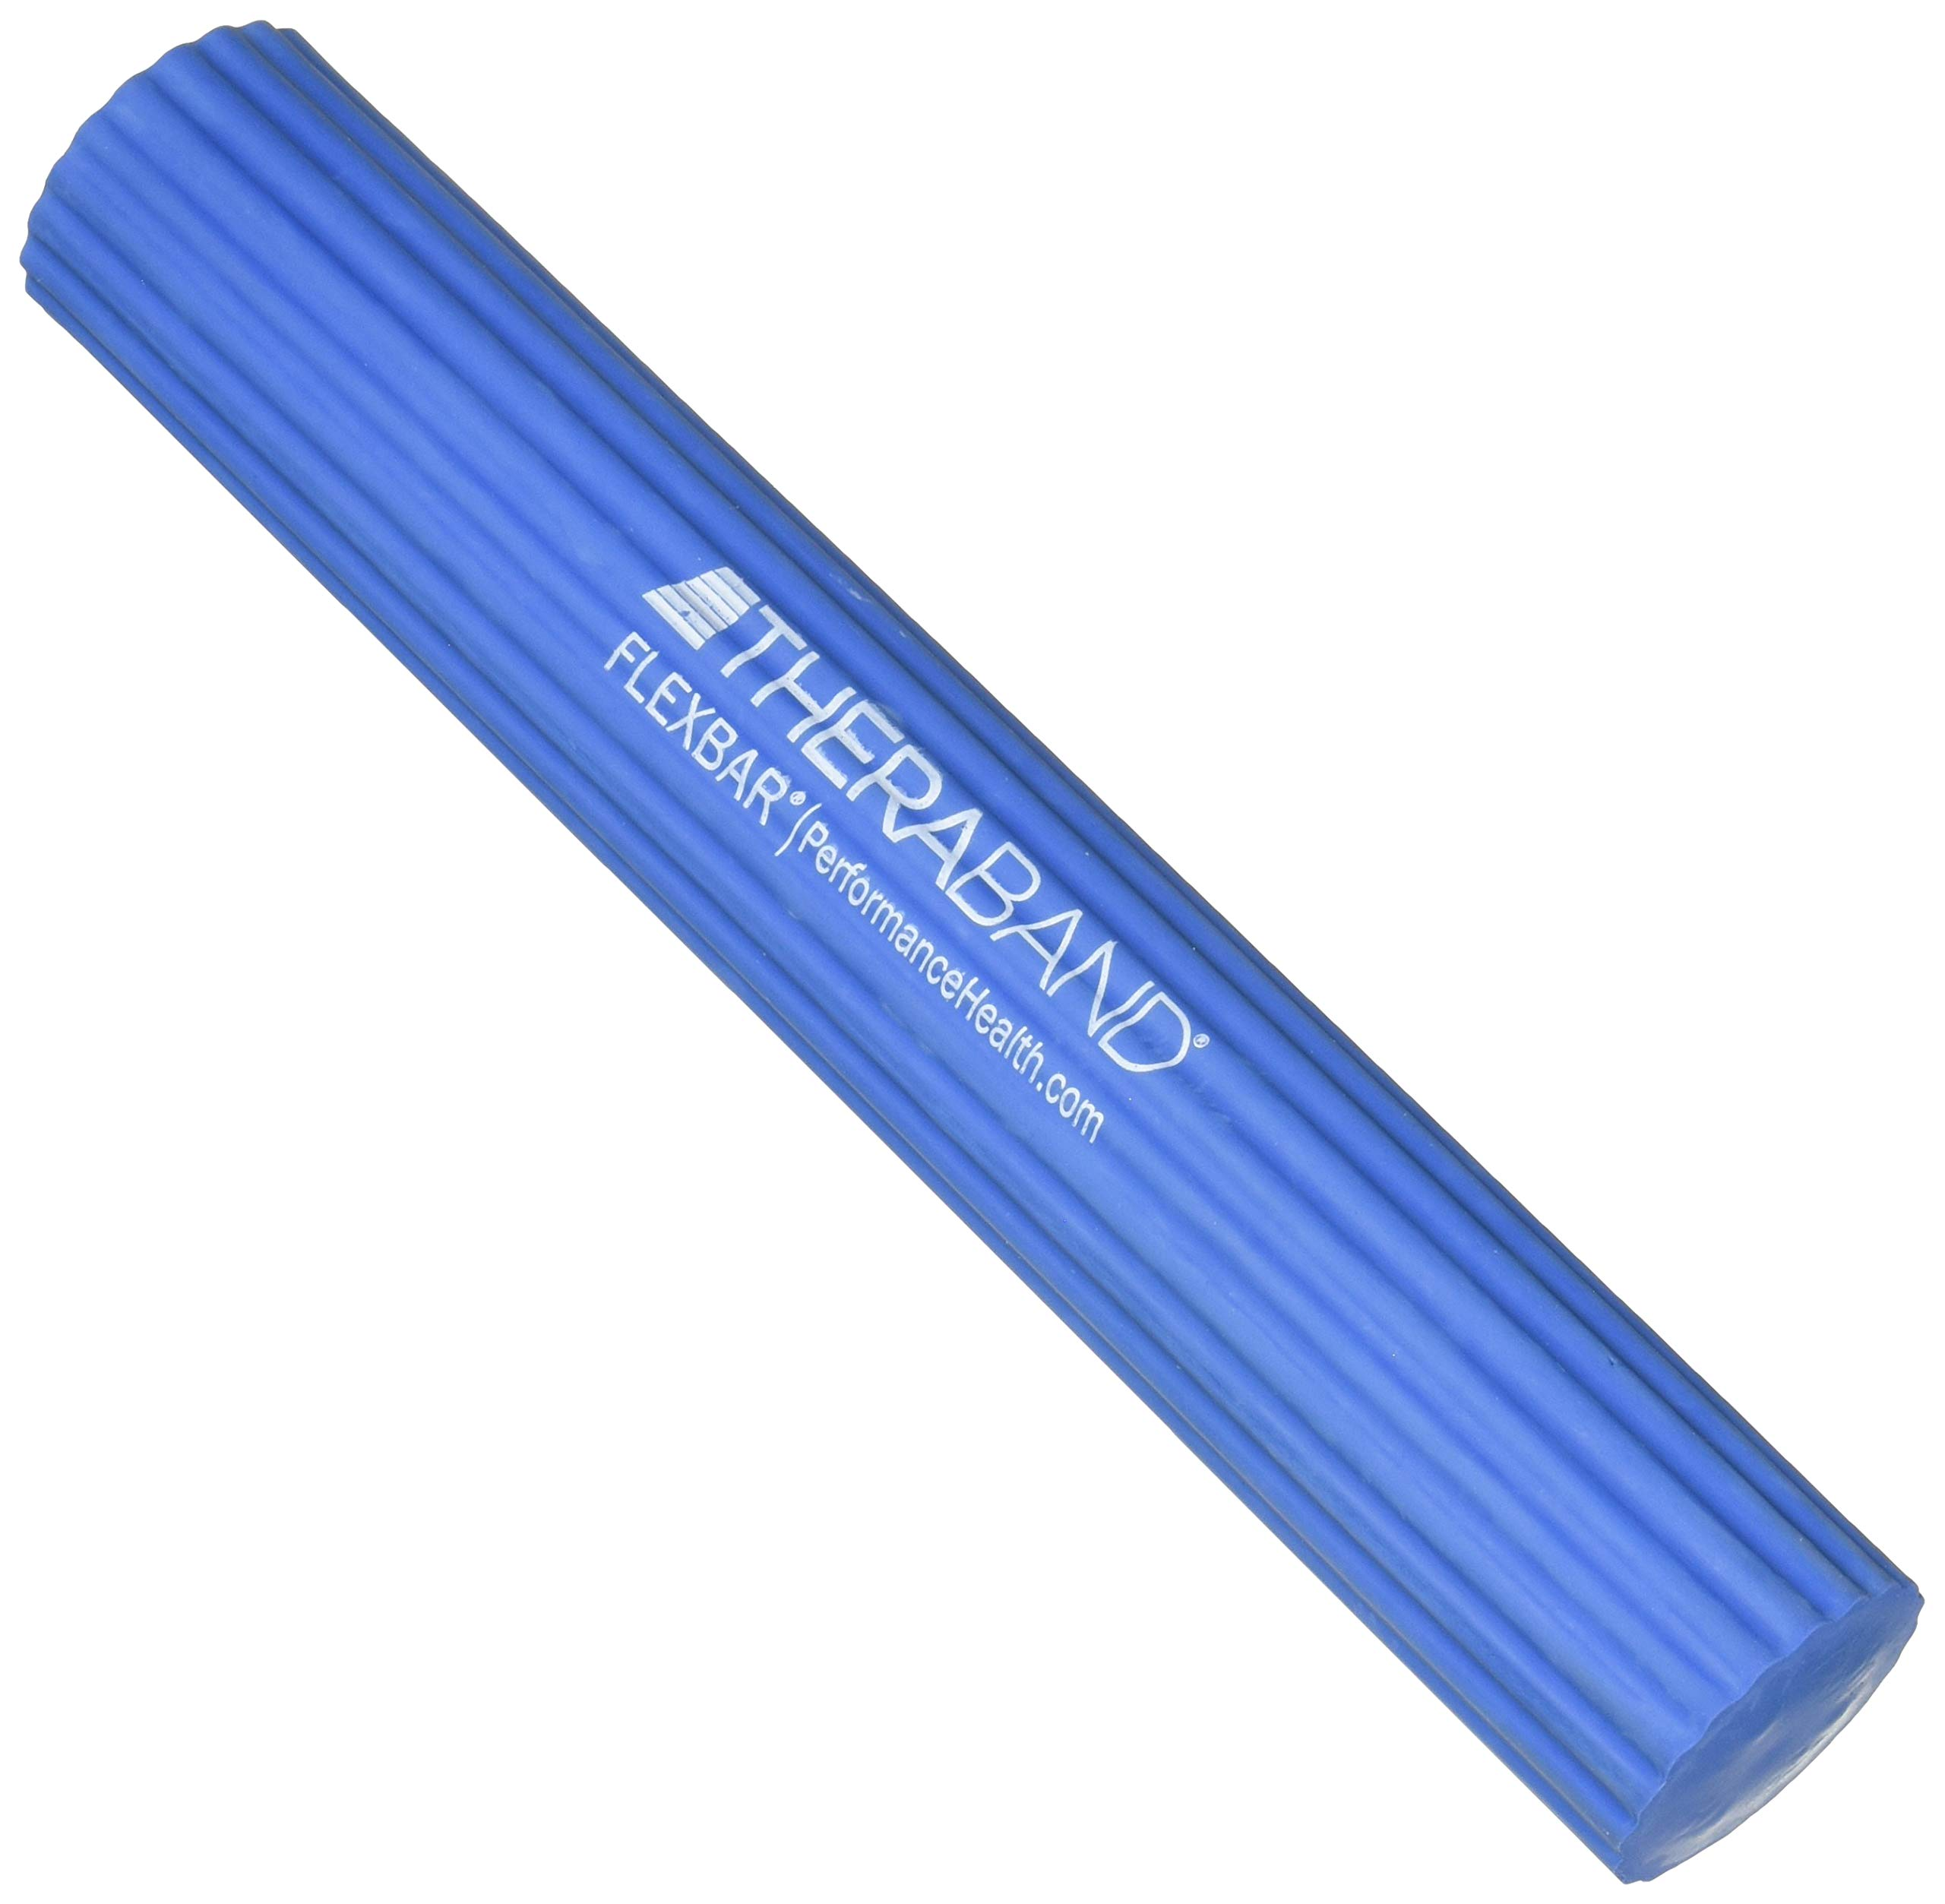 TheraBand FlexBar Resistance Bar for Medial Epicondylitis, Relieve Tendonitis Pain & Improve Grip Strength, Tennis Elbow, Golfers Elbow, and Tendinitis, Blue, Heavy, Advanced by TheraBand (Image #1)